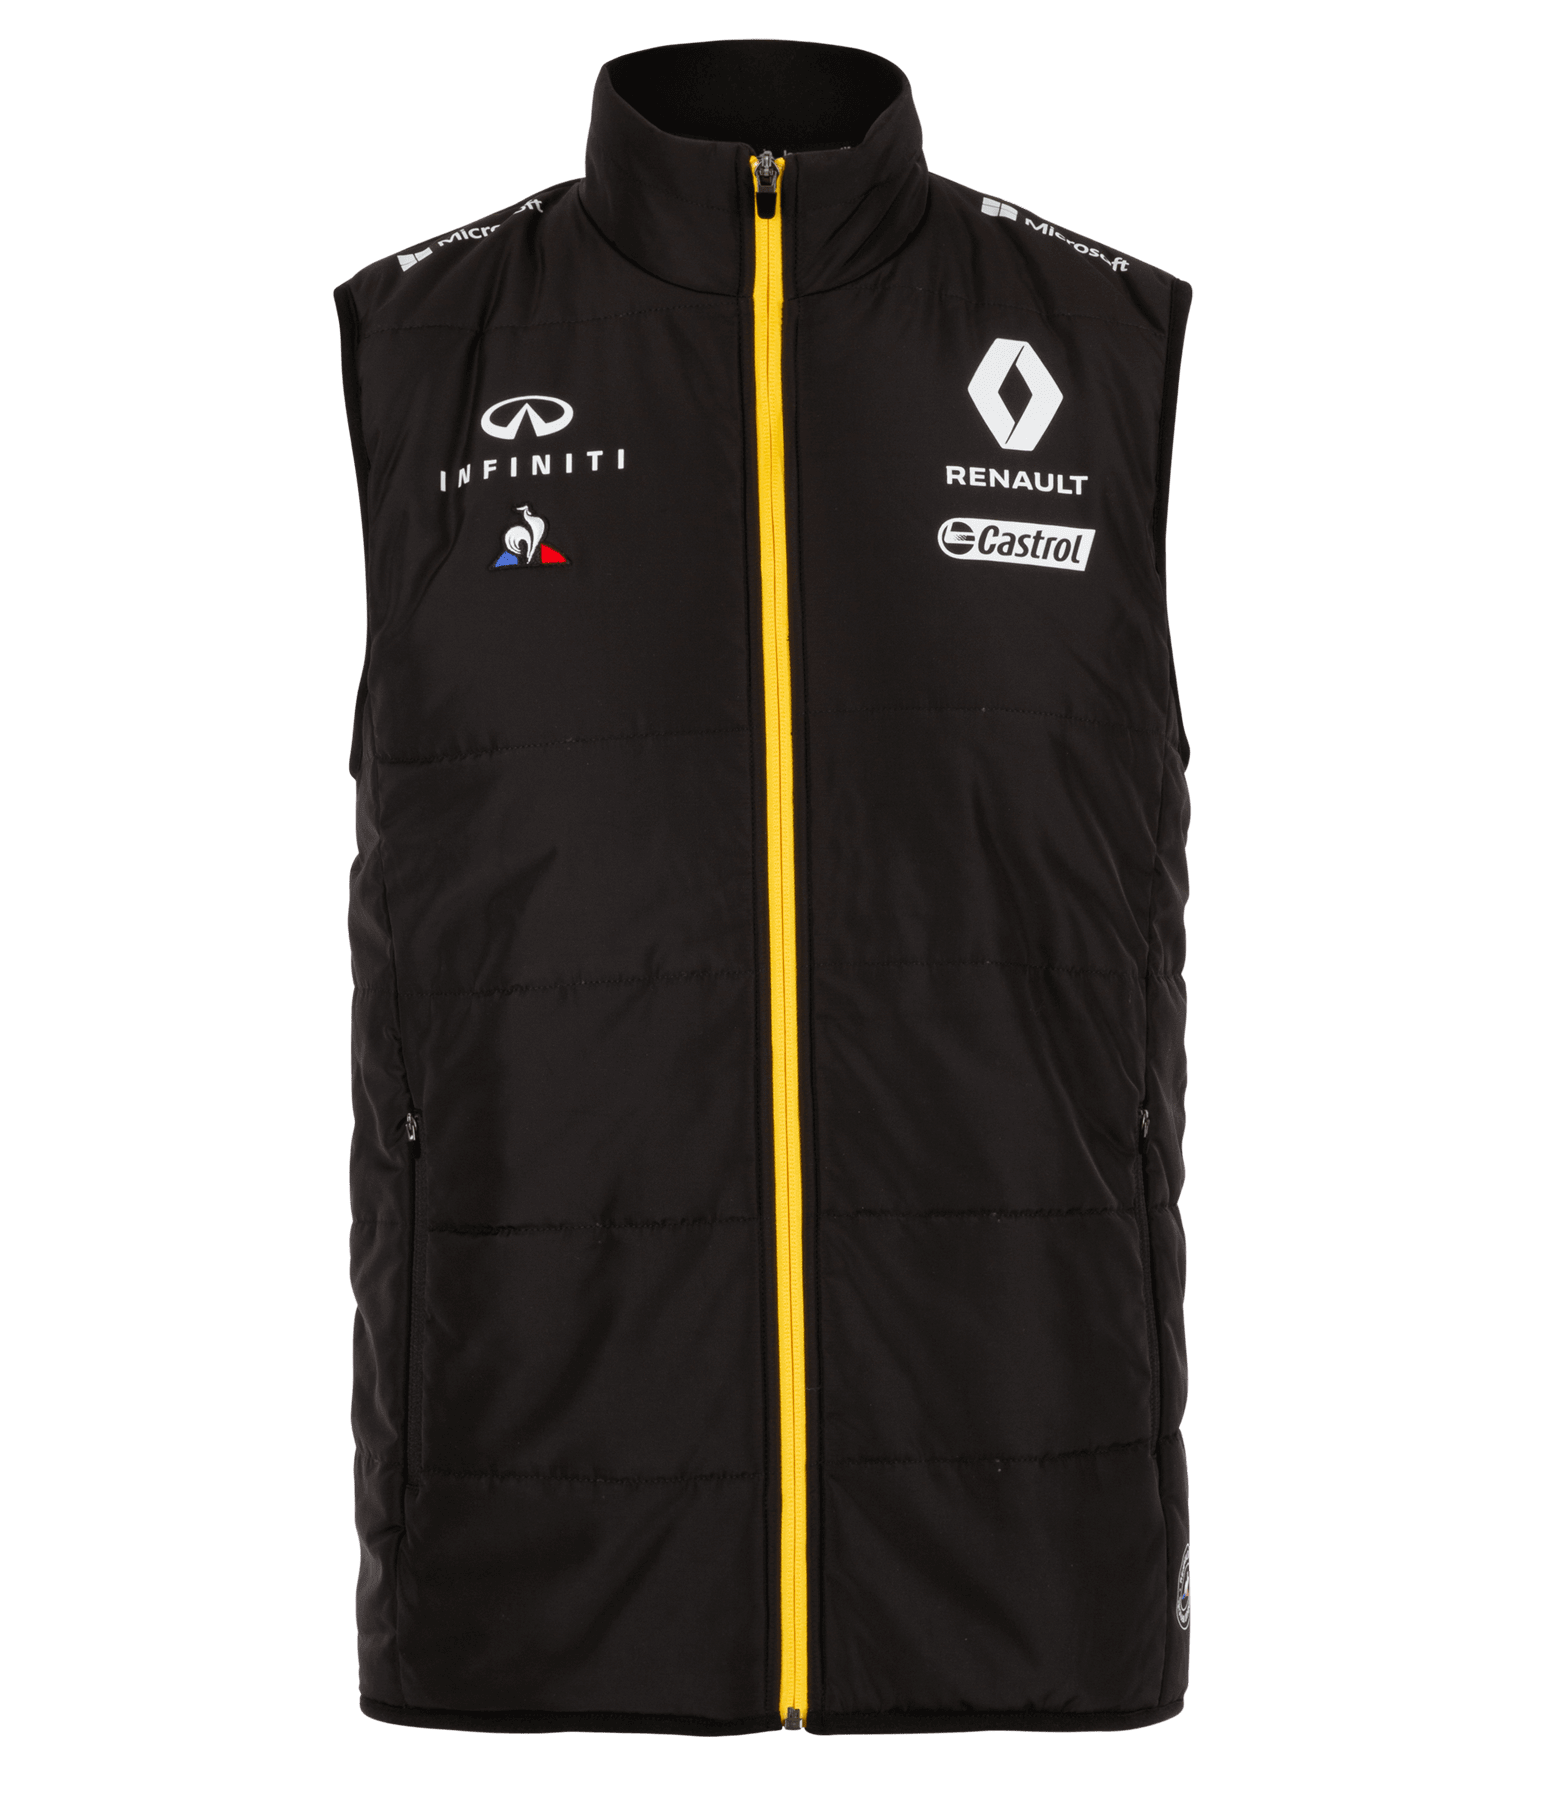 RENAULT F1® TEAM 2019 bodywarmer - black